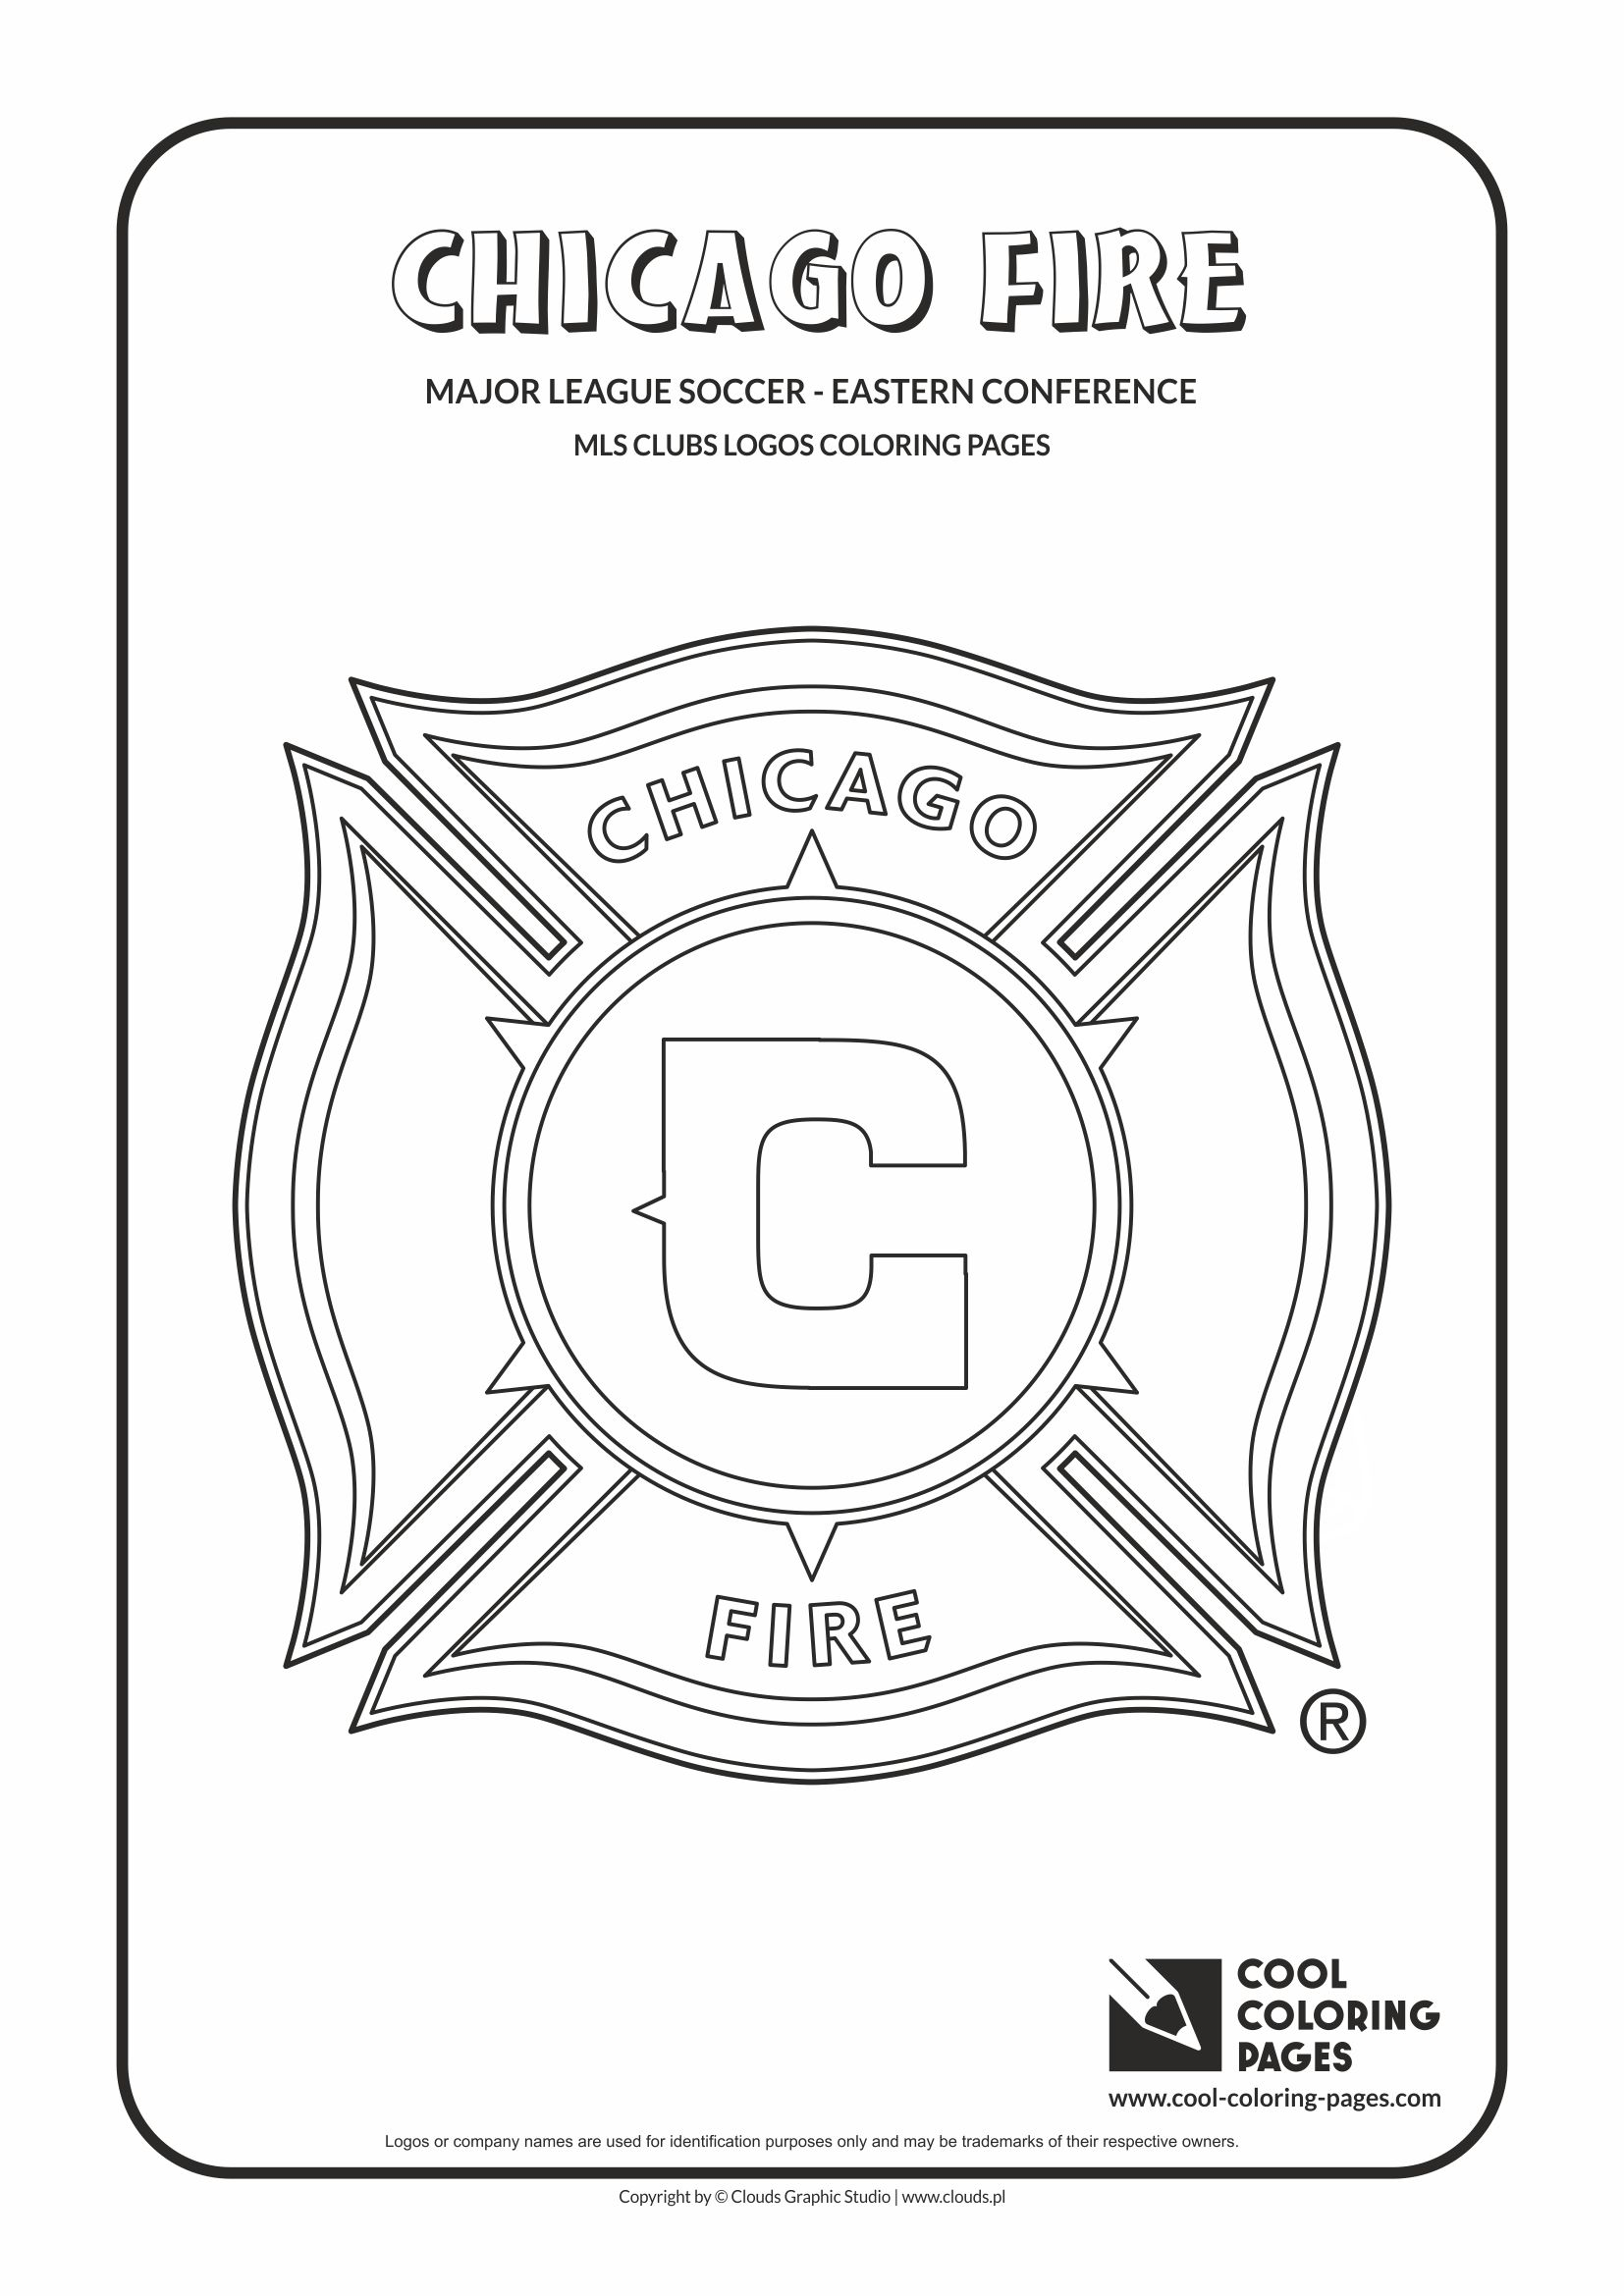 mls soccer clubs logos coloring pages cool coloring pages